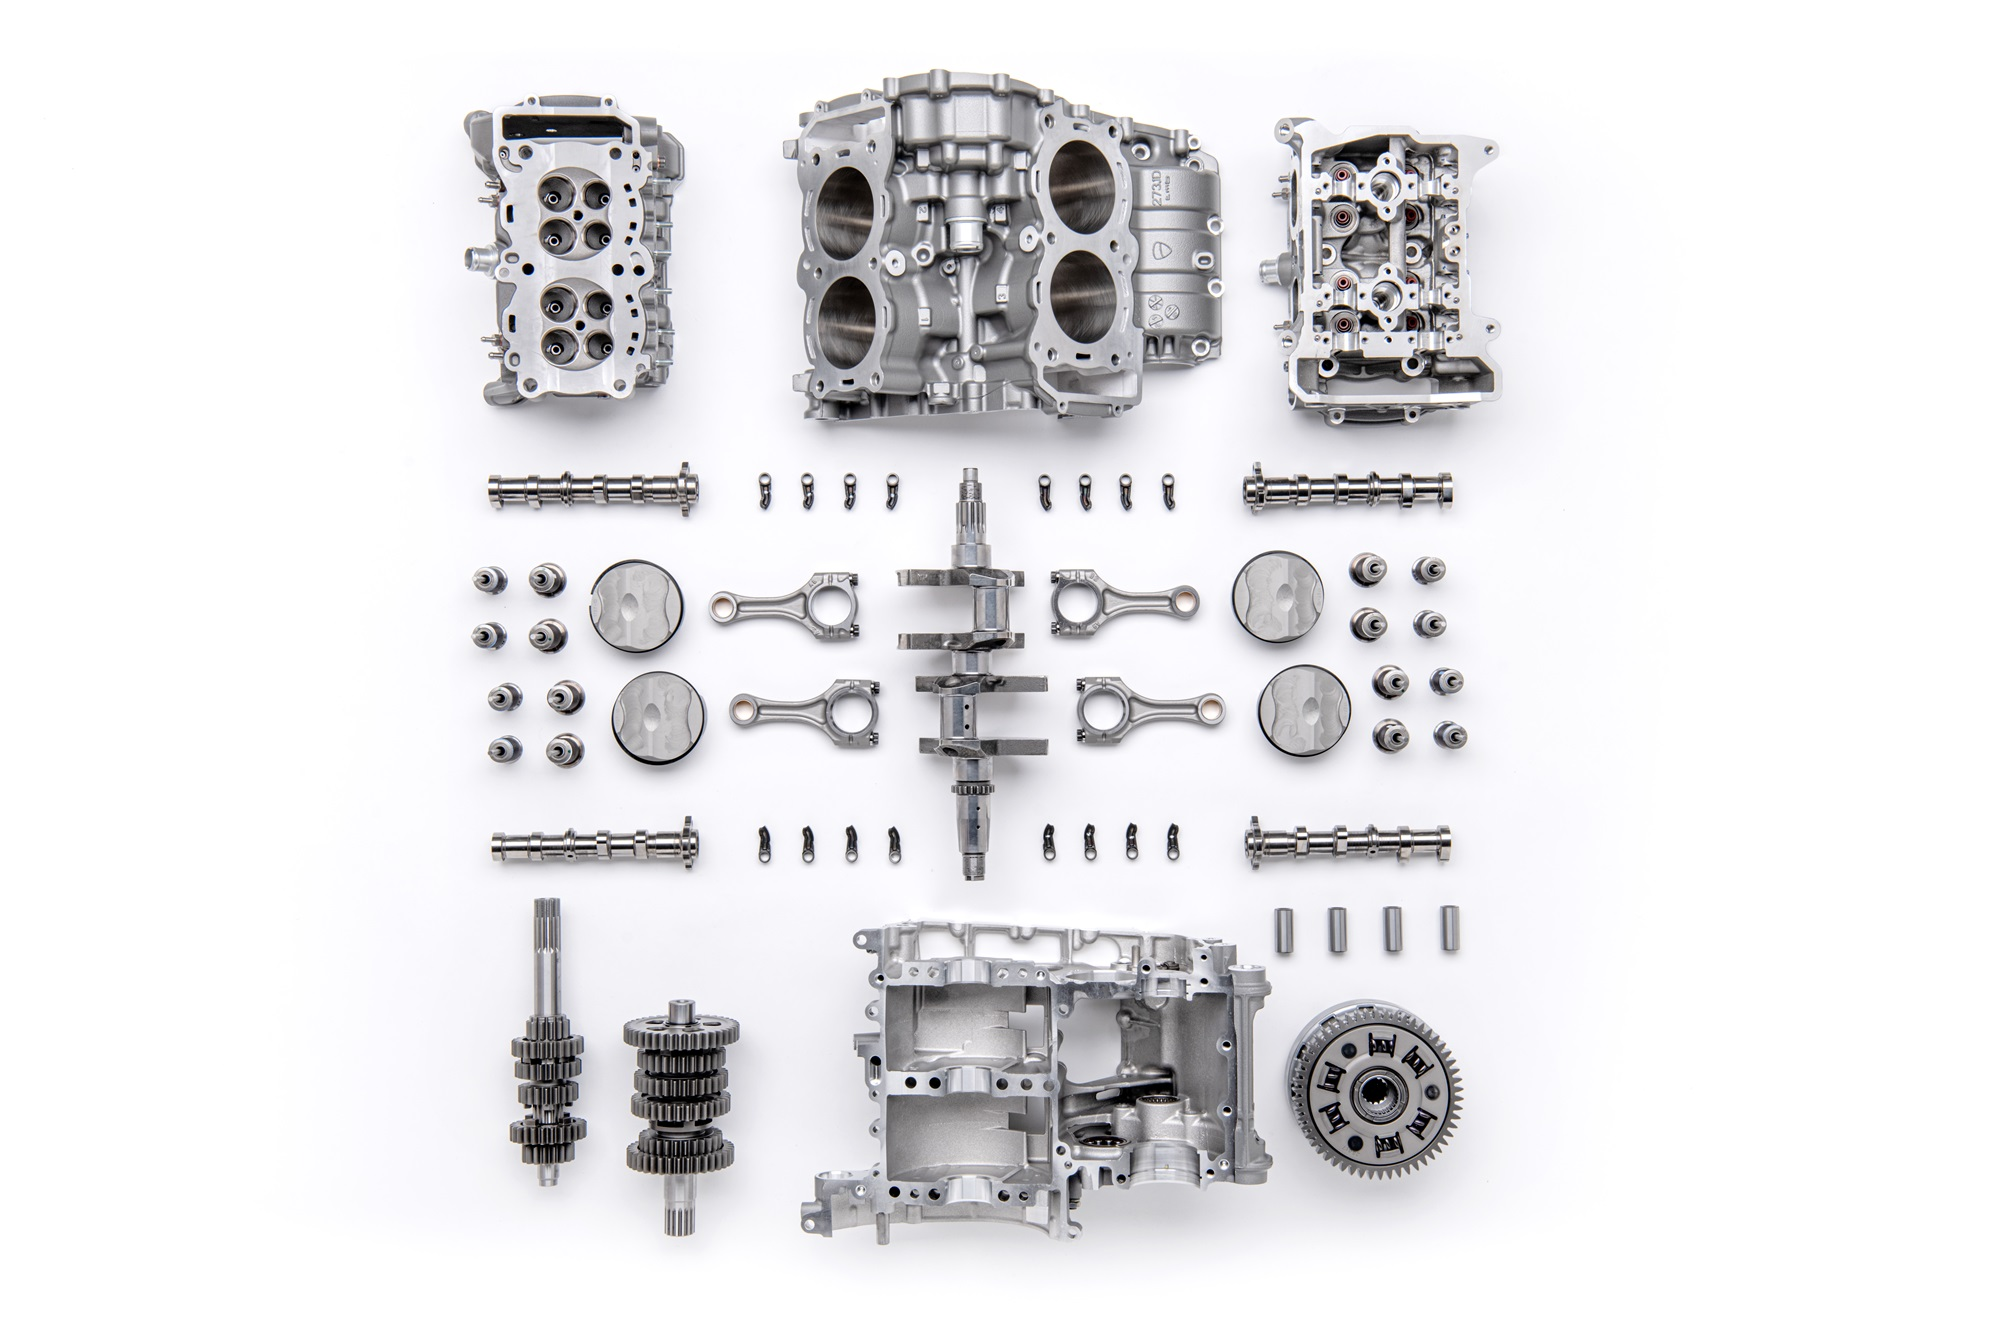 The new Ducati V4 Granturismo engine components